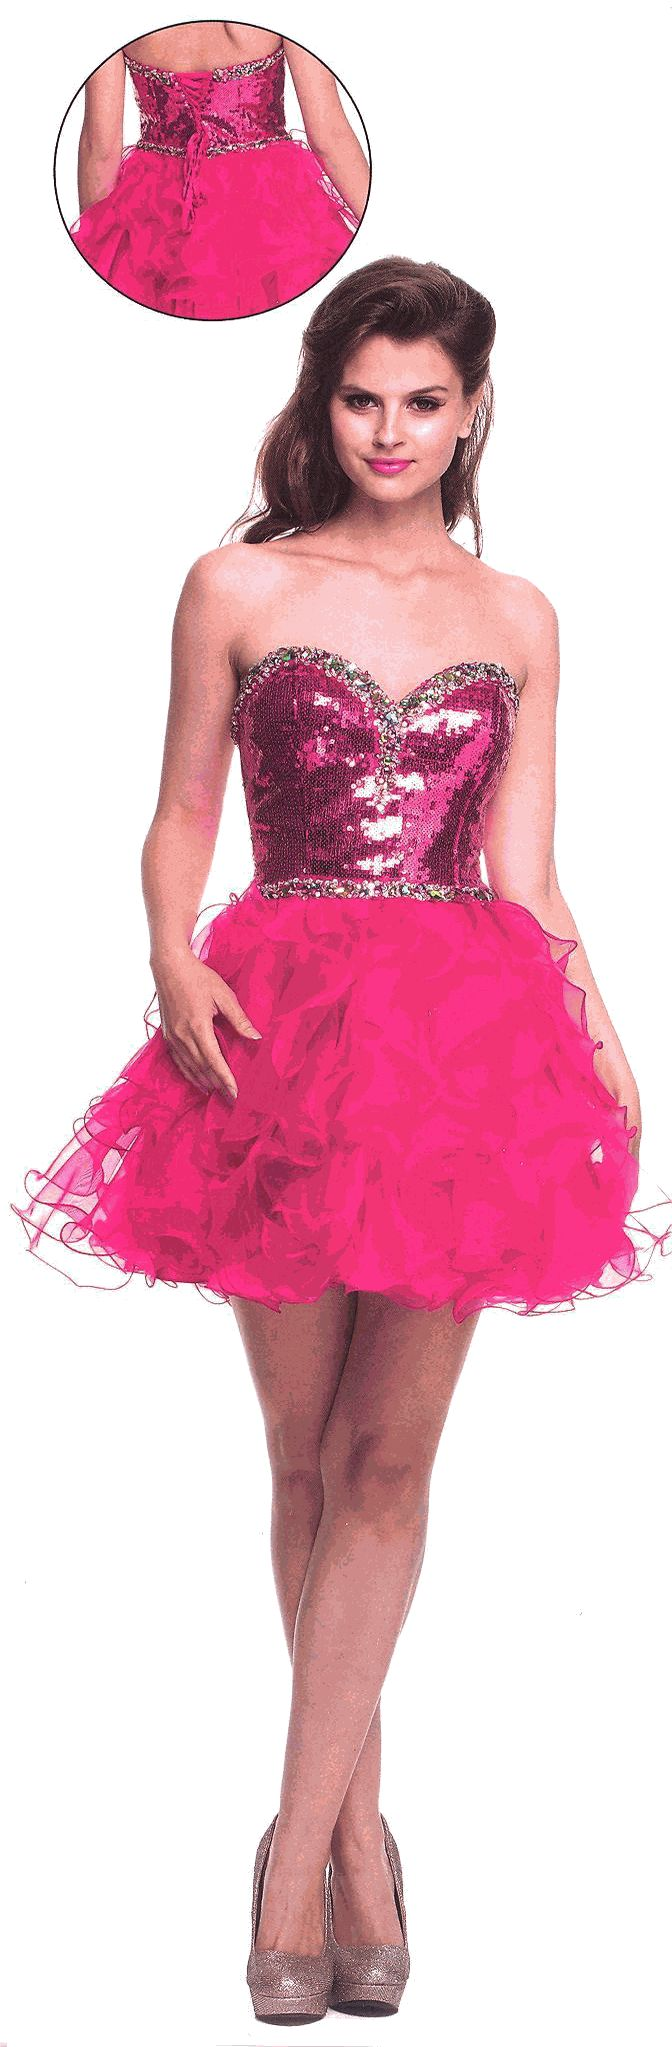 69 best Homecoming images on Pinterest | Ball gown, Prom dresses and ...